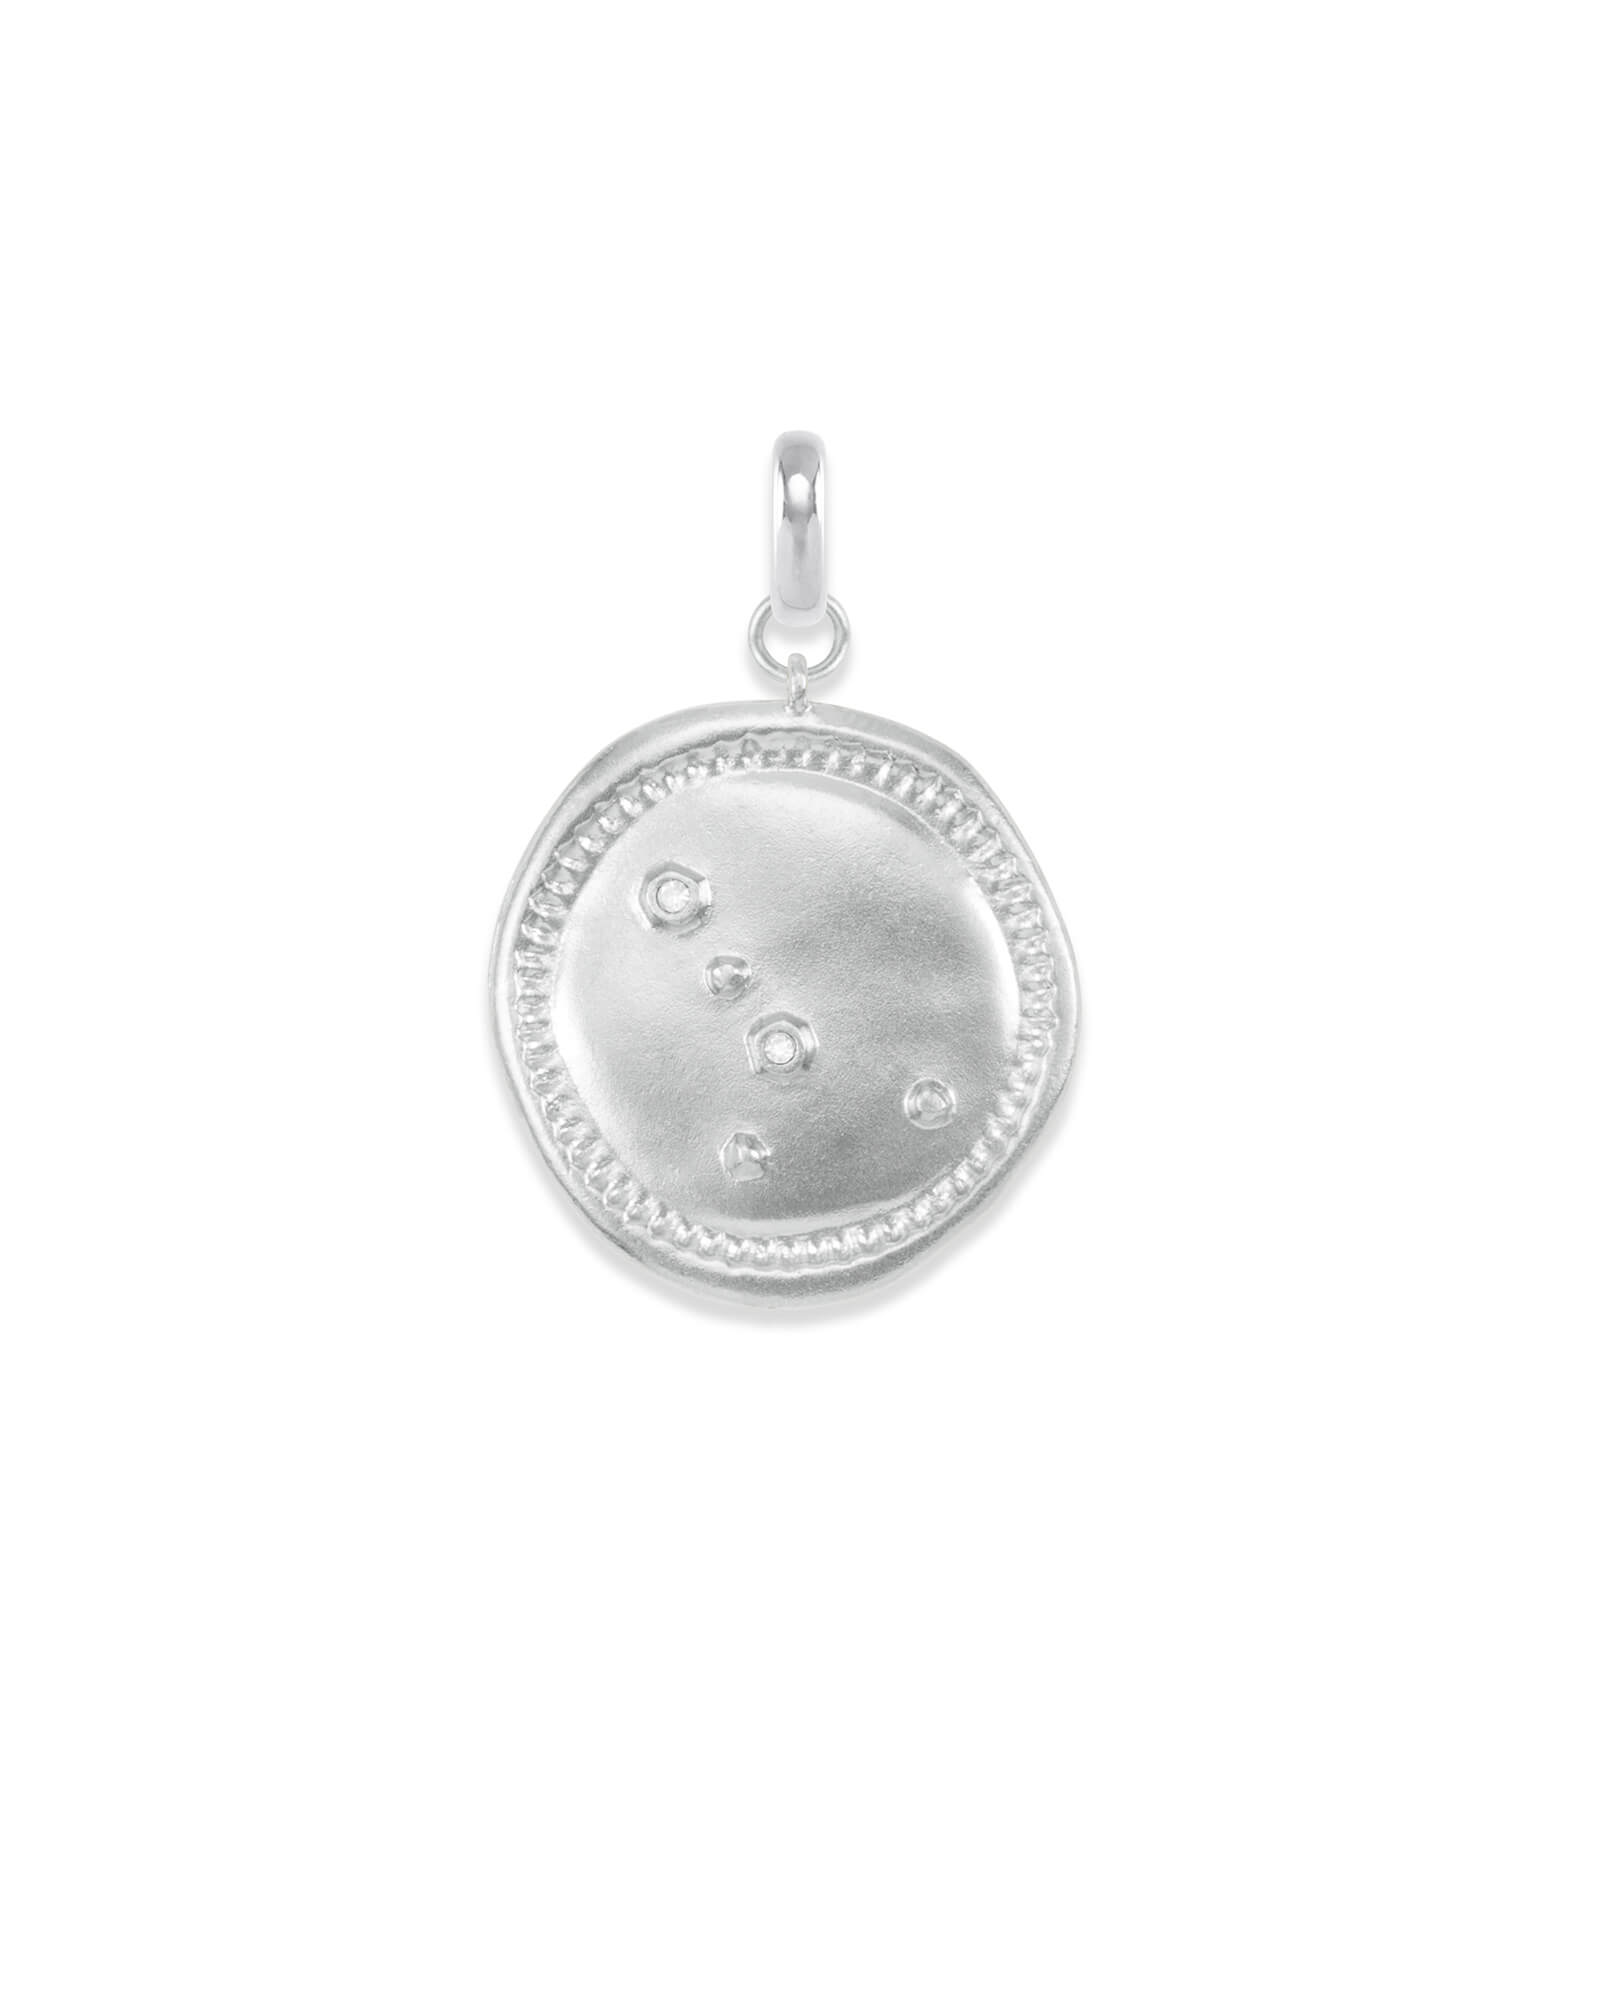 Cancer Coin Charm in Silver